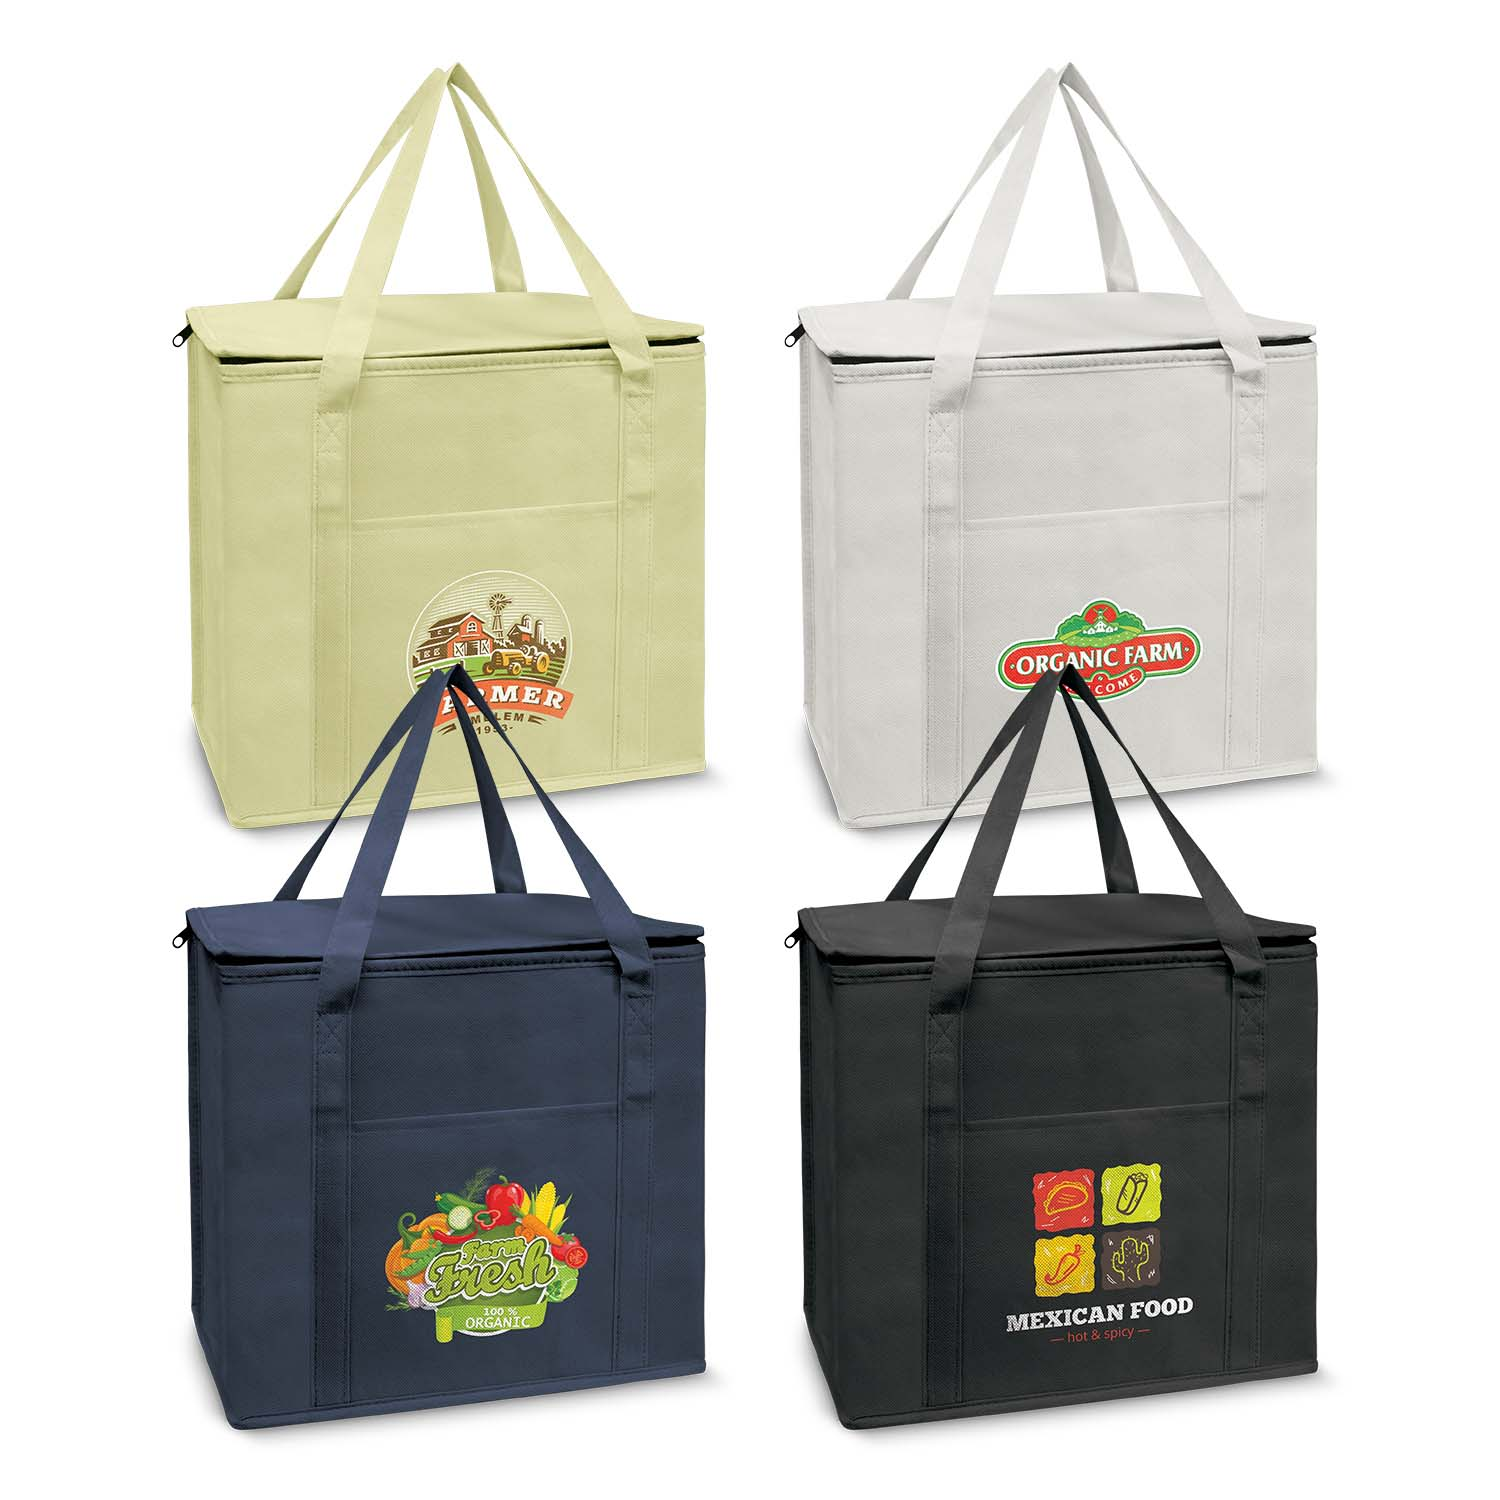 Custom Printed Sierra Shopping Cooler Bag in Perth